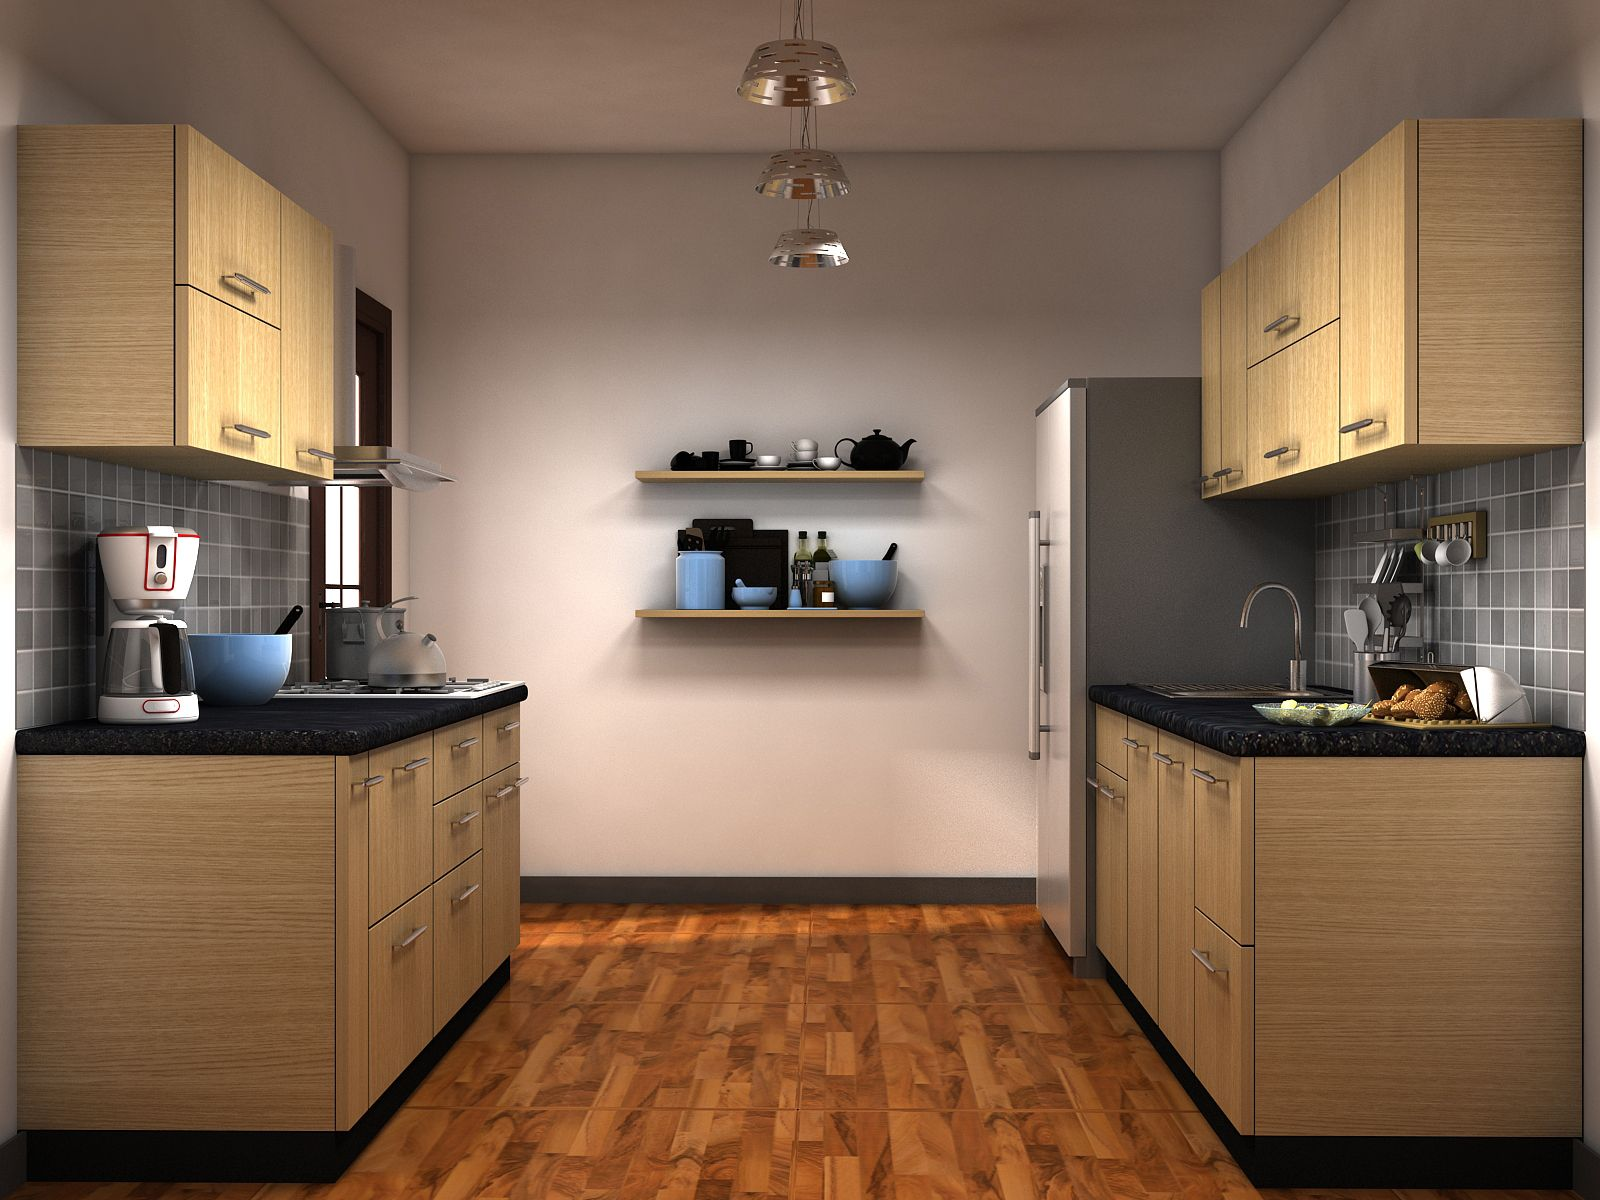 parallel modular kitchen designs kitchen design small parallel kitchen design on a kitchen design id=74875